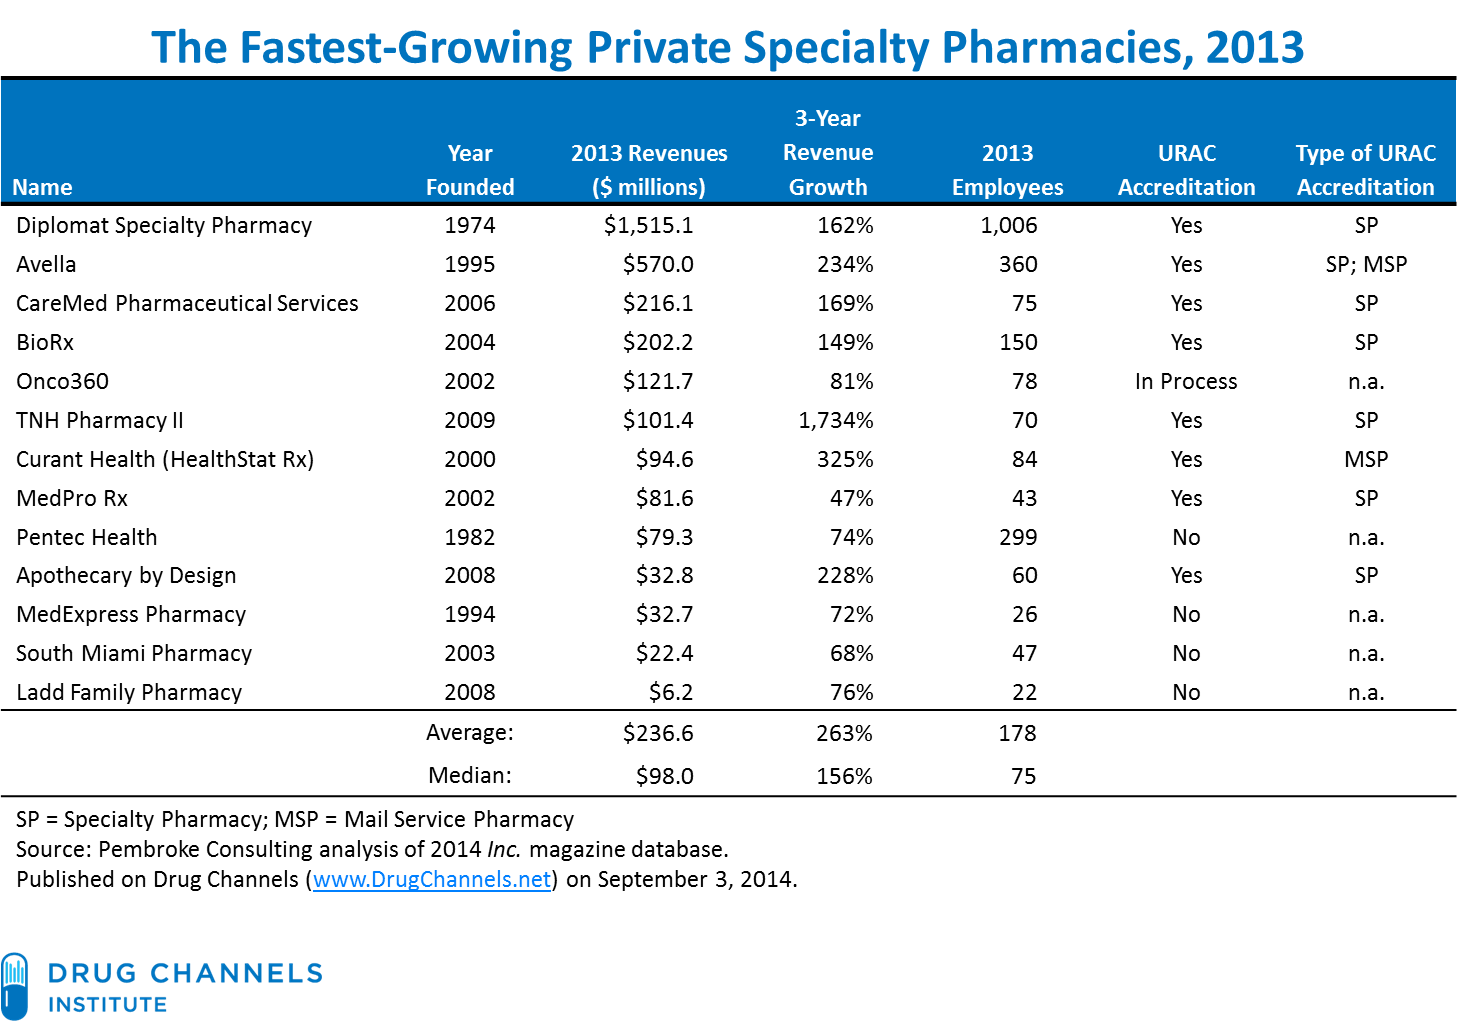 Drug Channels S Fastest Growing Private Specialty Pharmacies